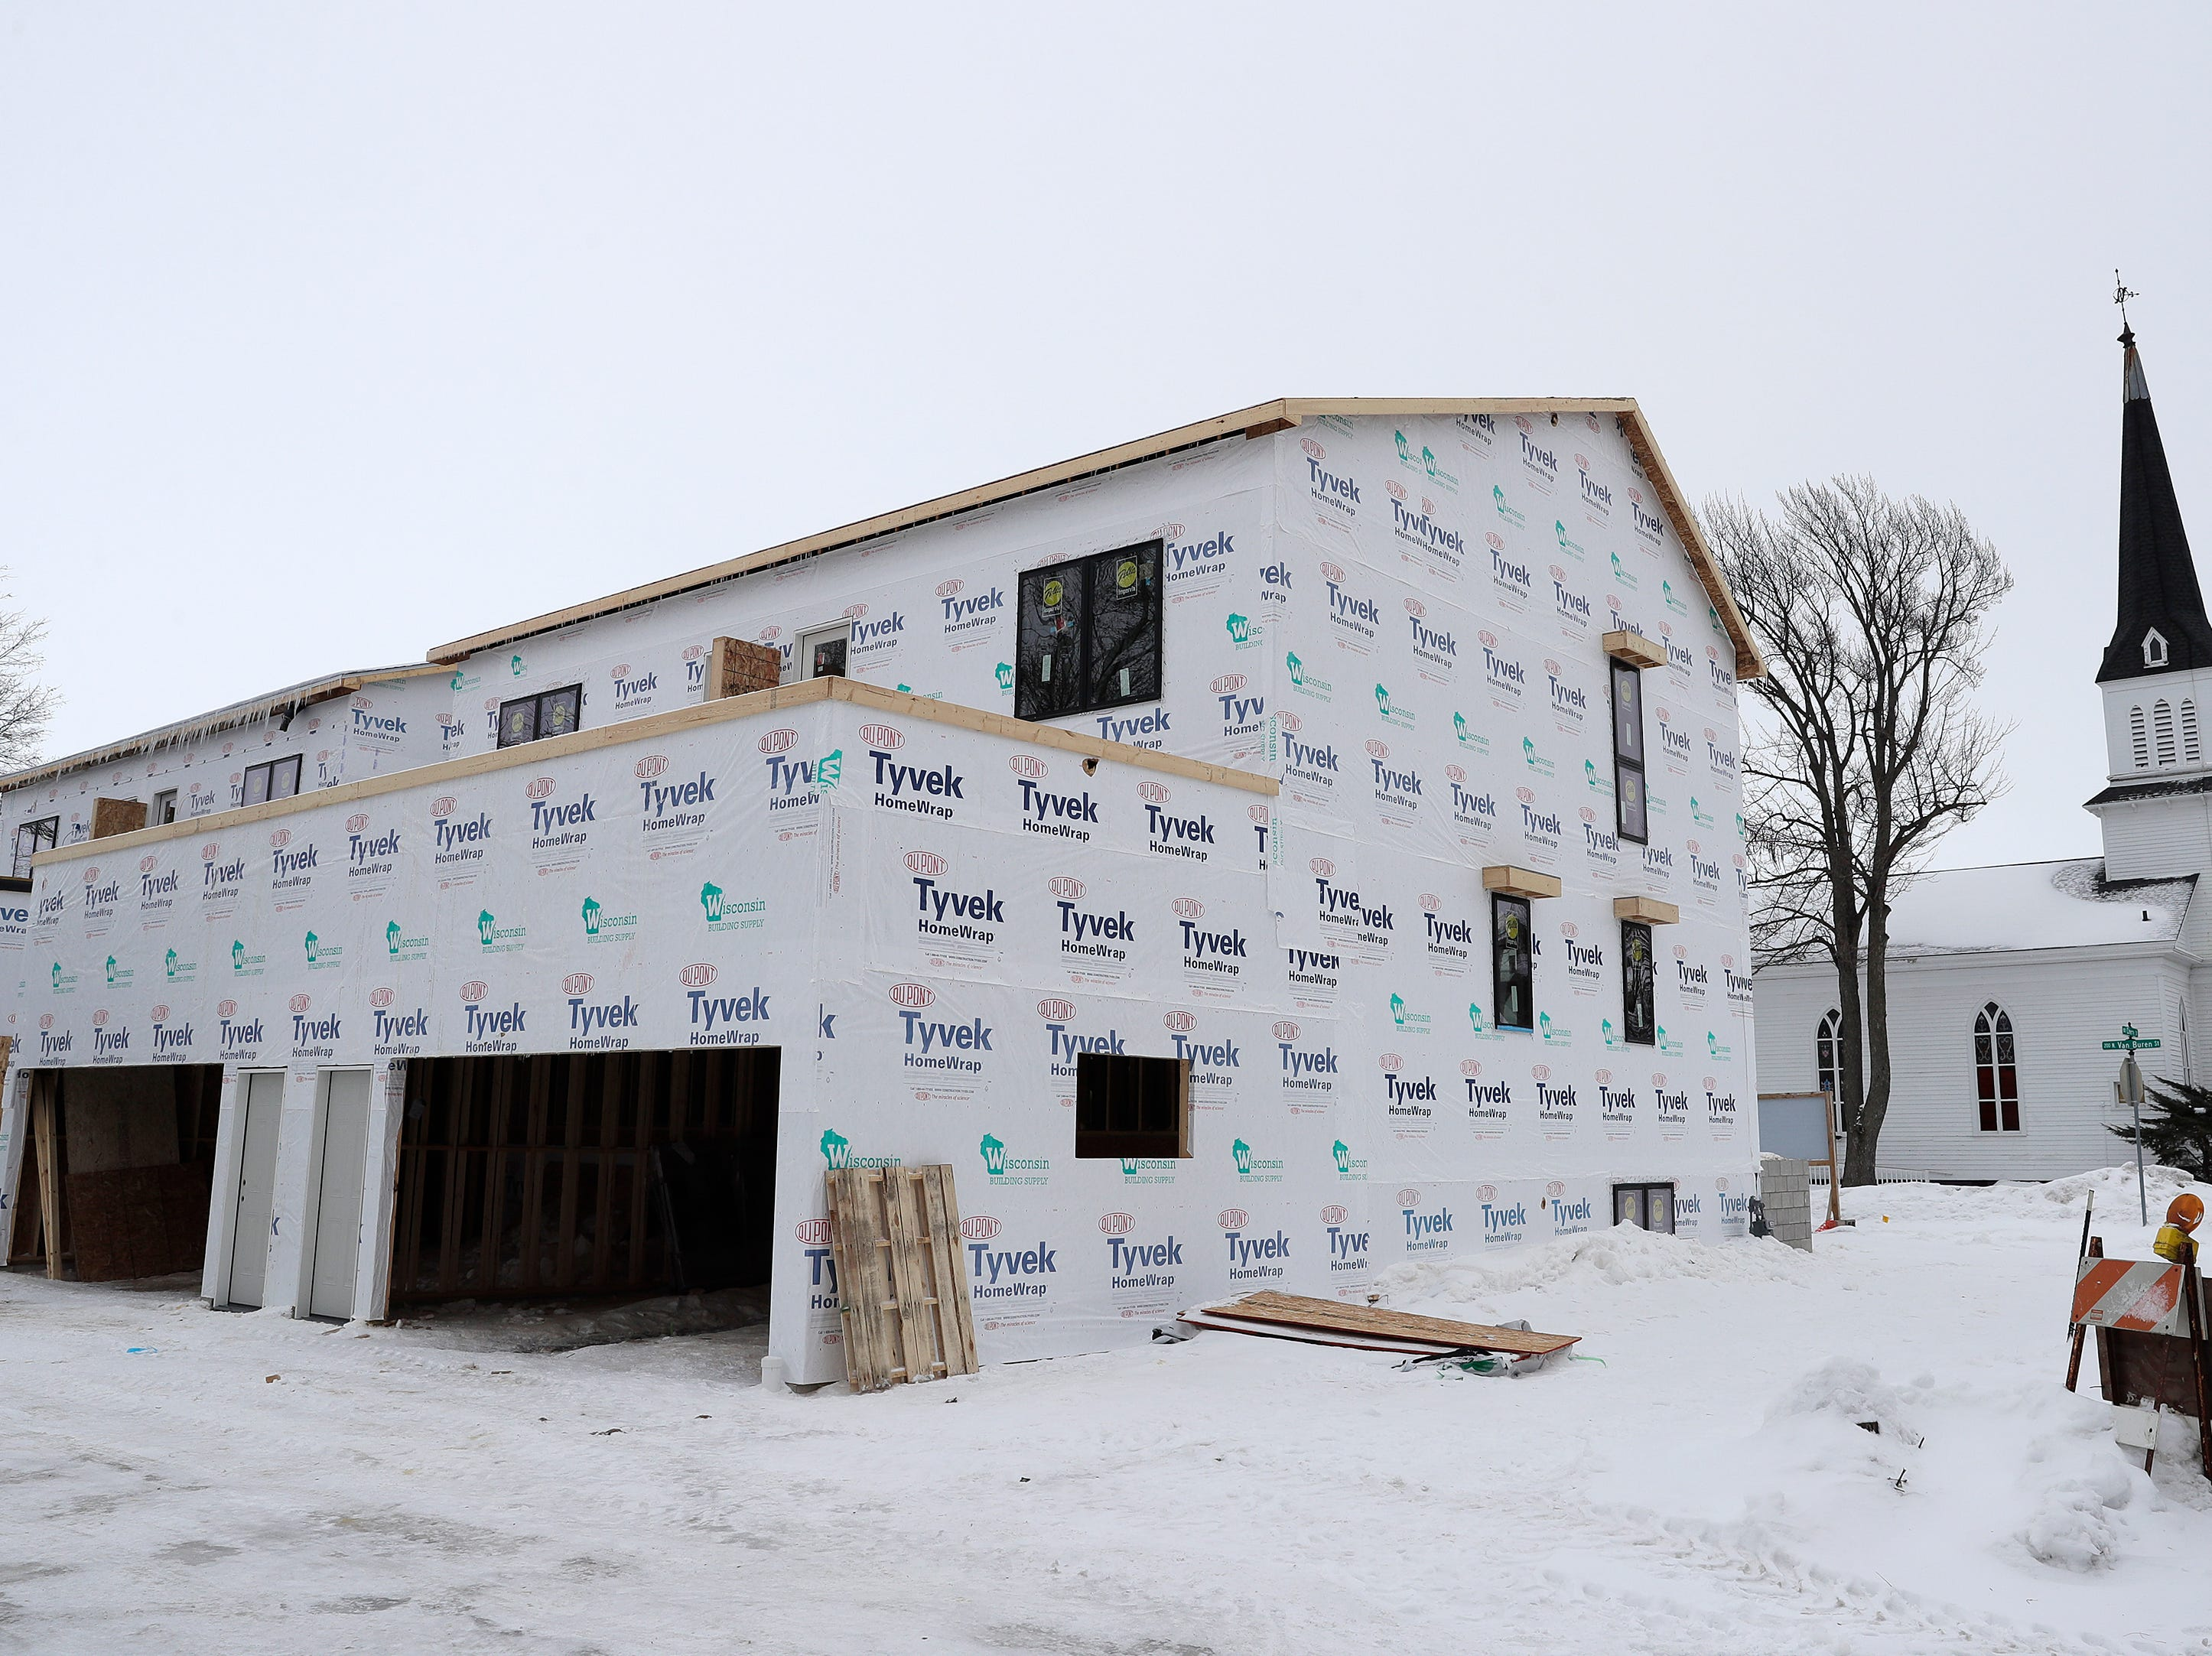 Under-construction townhouses on the corner of Van Buren and Cherry streets are shown on Tuesday, February 26, 2019 in Green Bay, Wis.